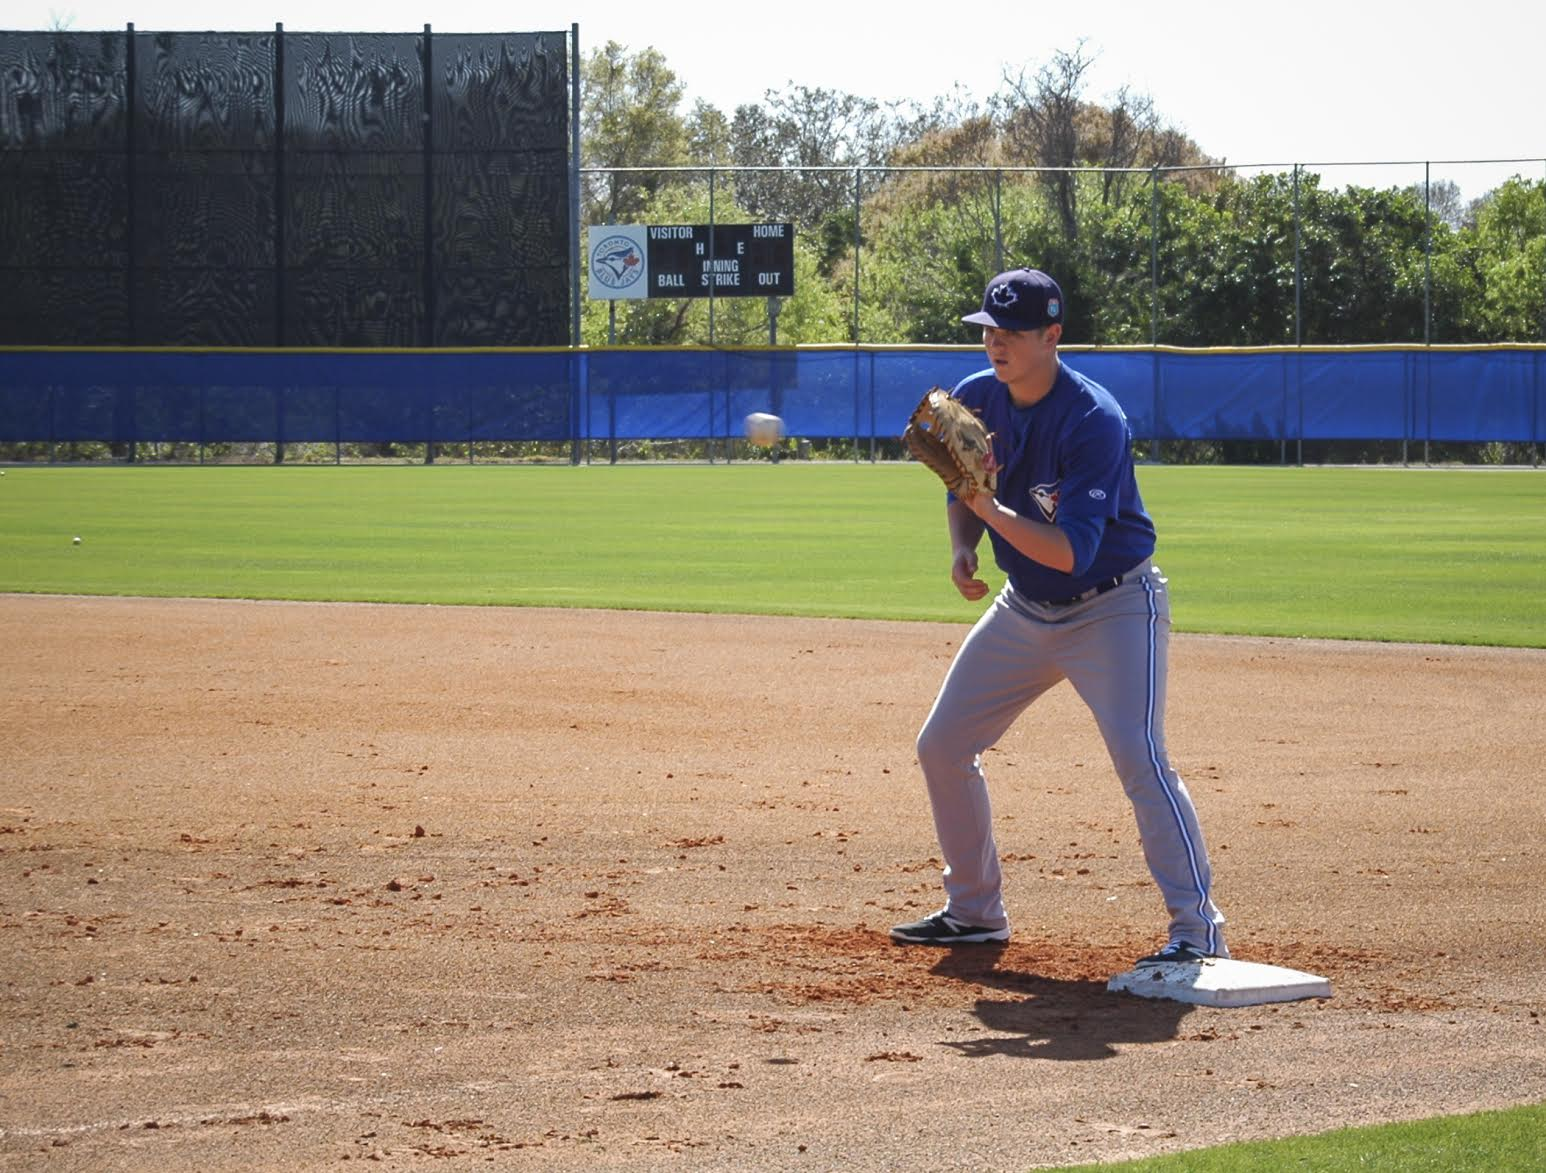 Christian Williams takes fielding practice at first base.Photo: Kyle Forster